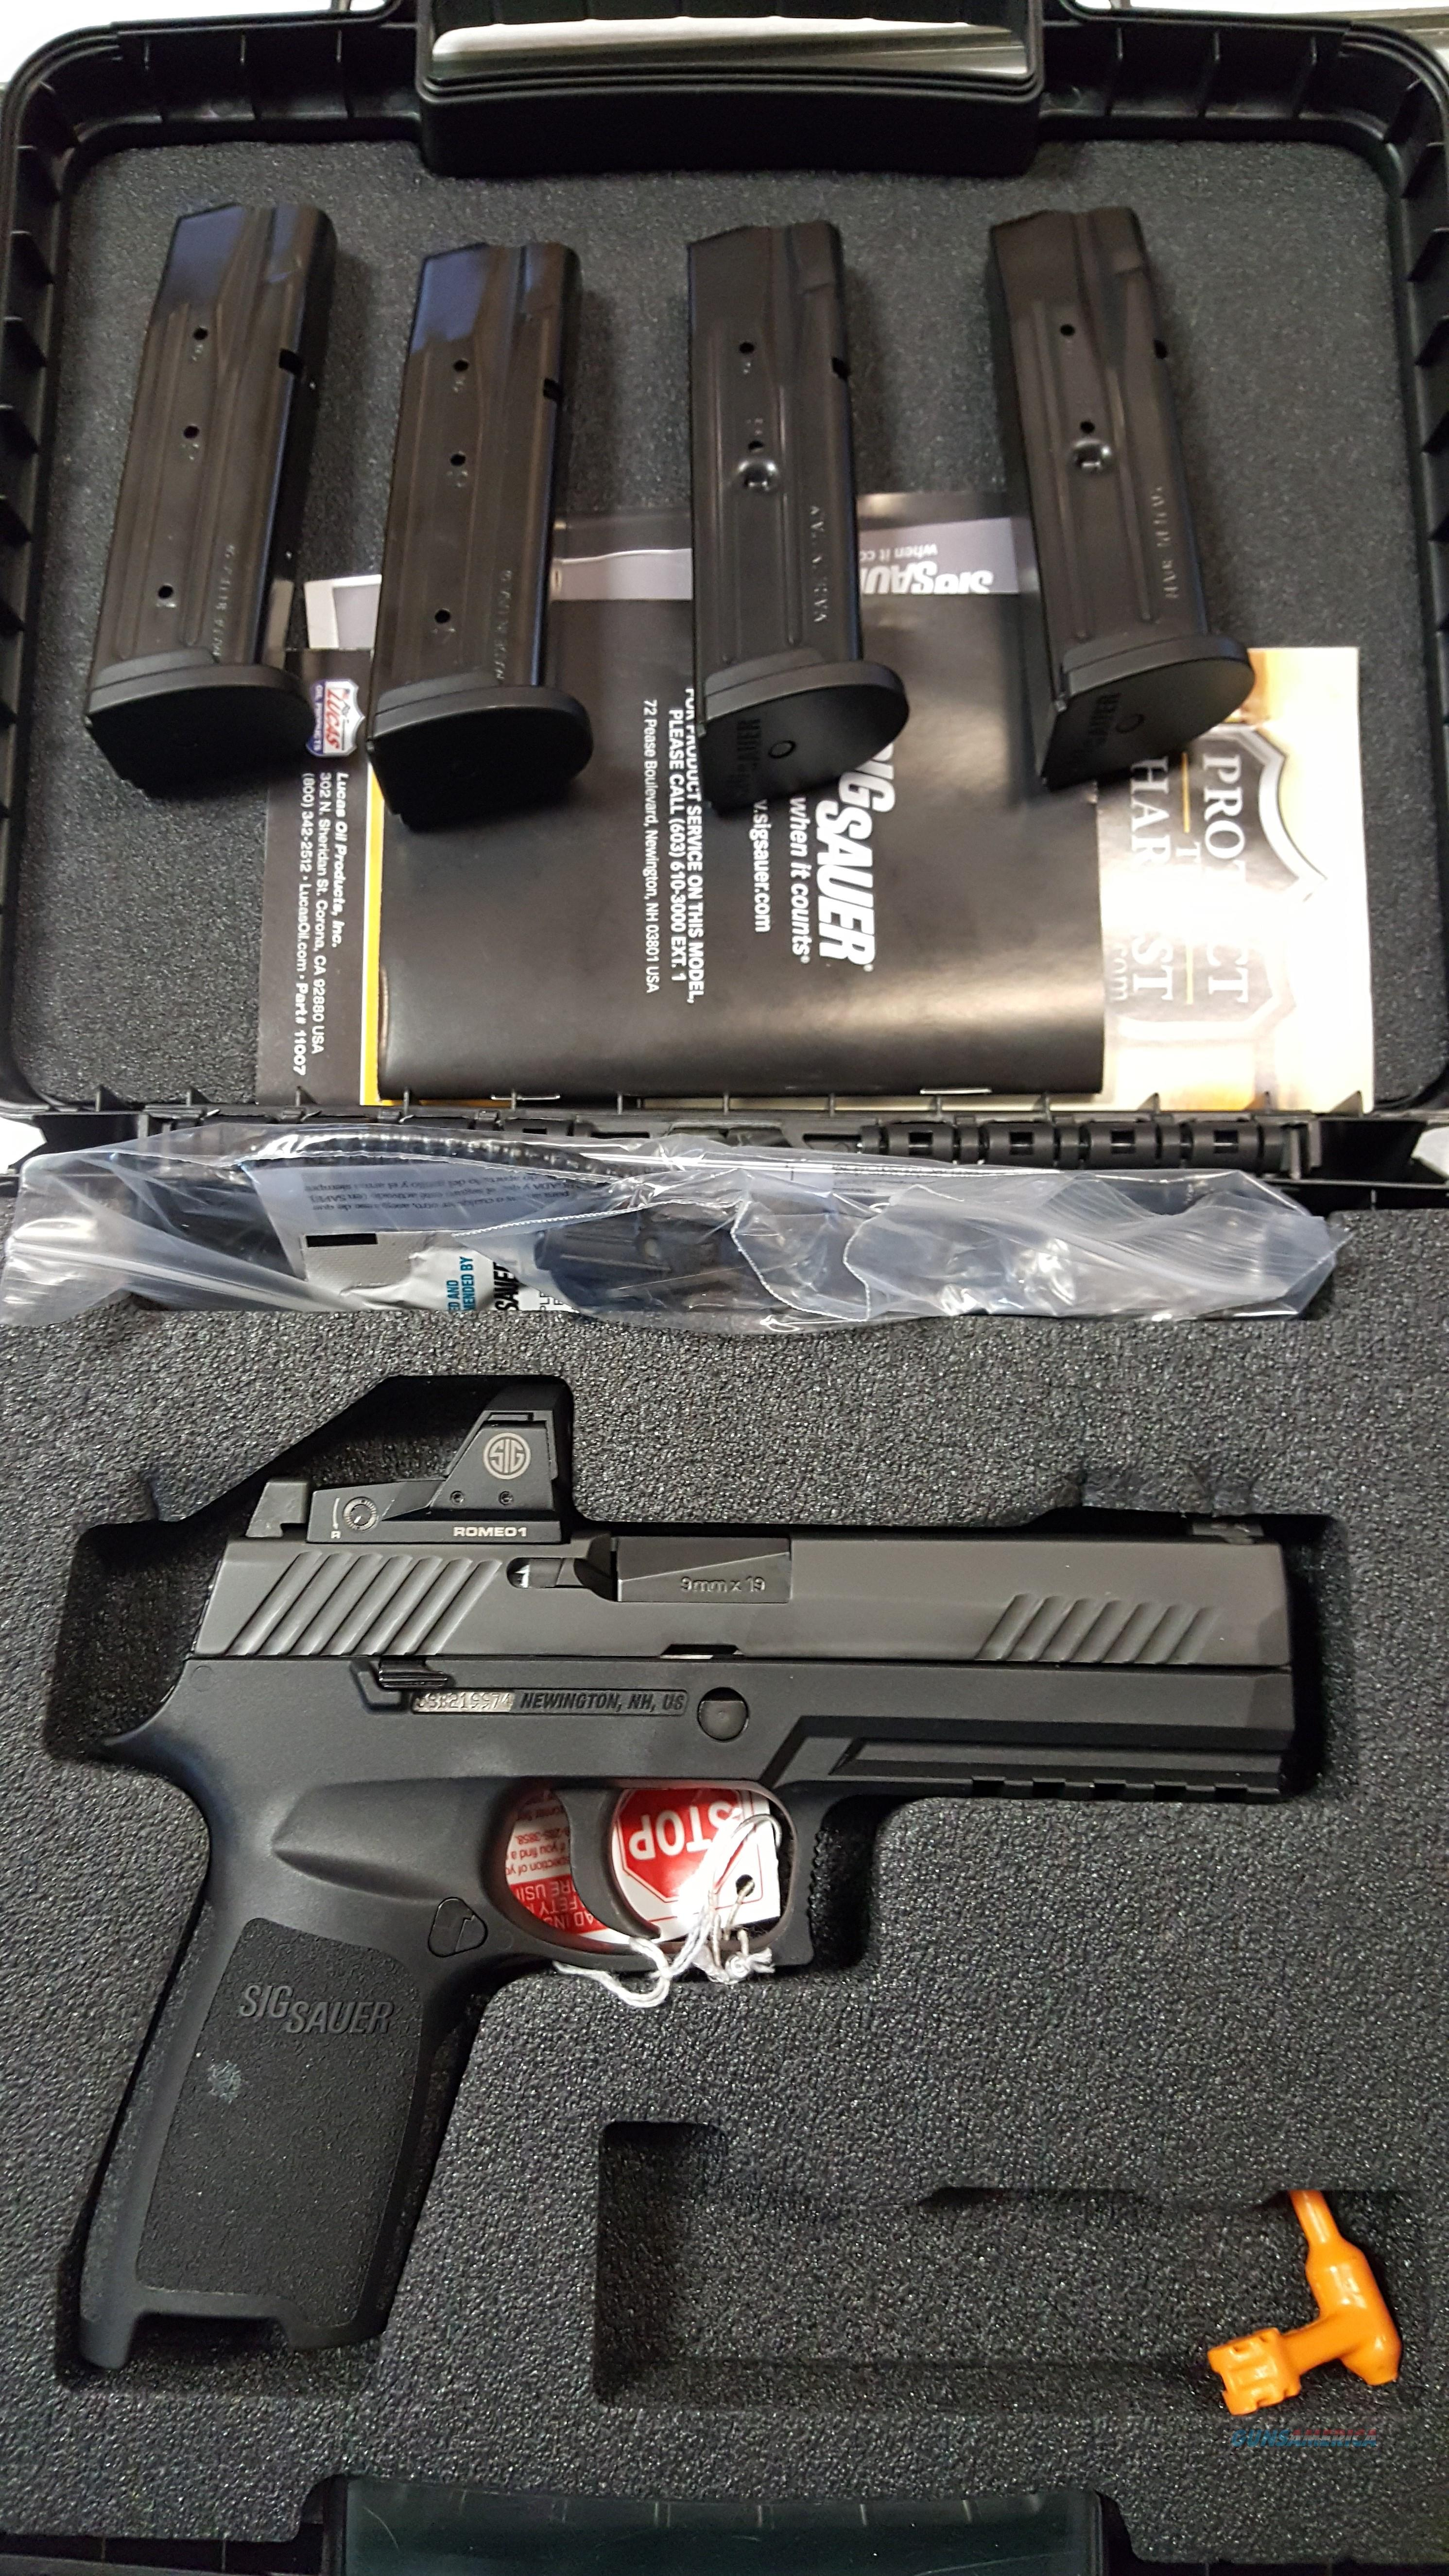 Sig Sauer P320 9mm 2 extra mags FREE SHIPPING NO CC FEE!!!!!  Guns > Pistols > Sig - Sauer/Sigarms Pistols > P320